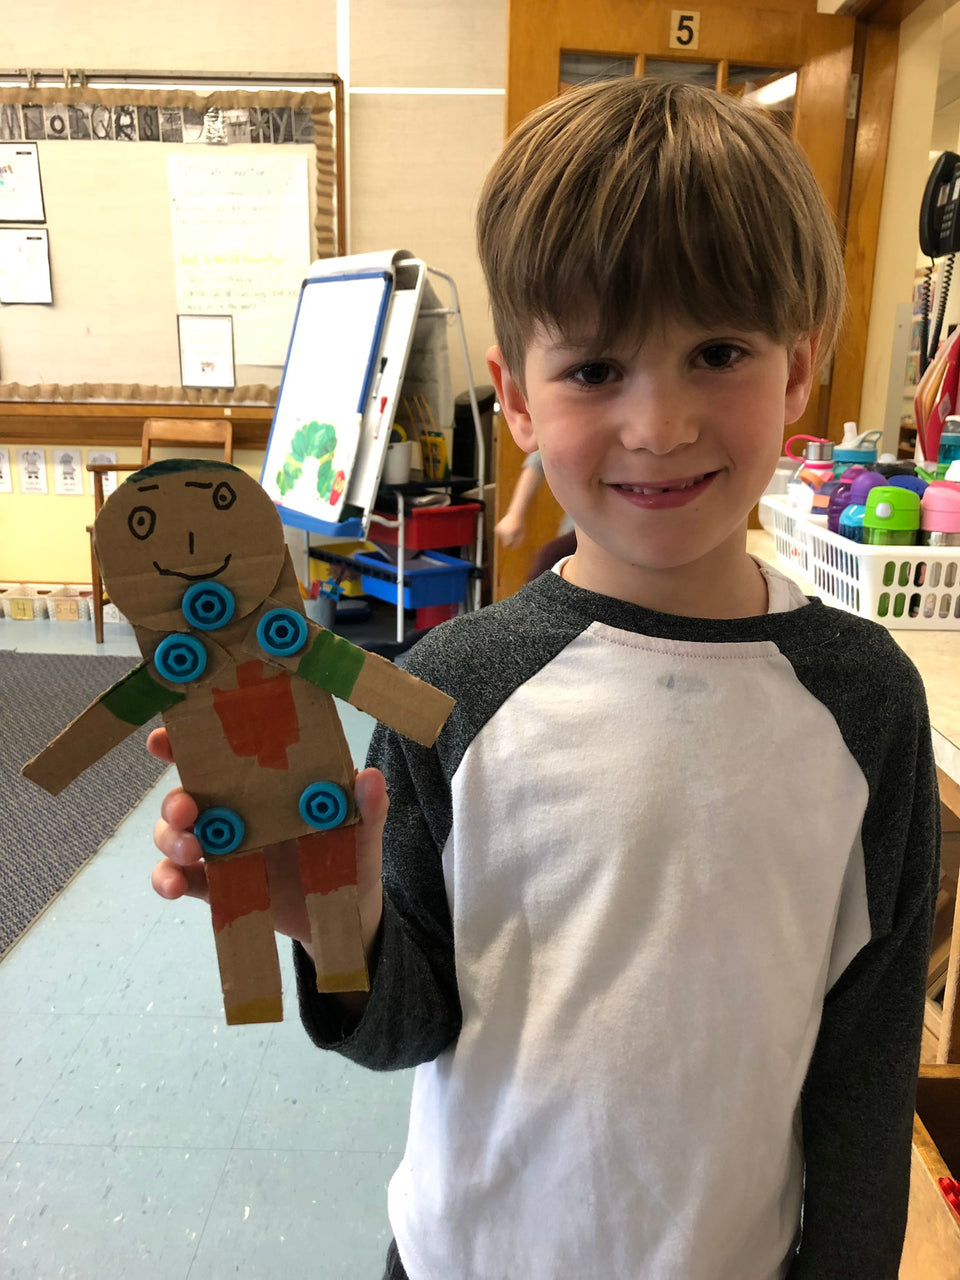 Making 2D human figures using cardboard and Makedo.